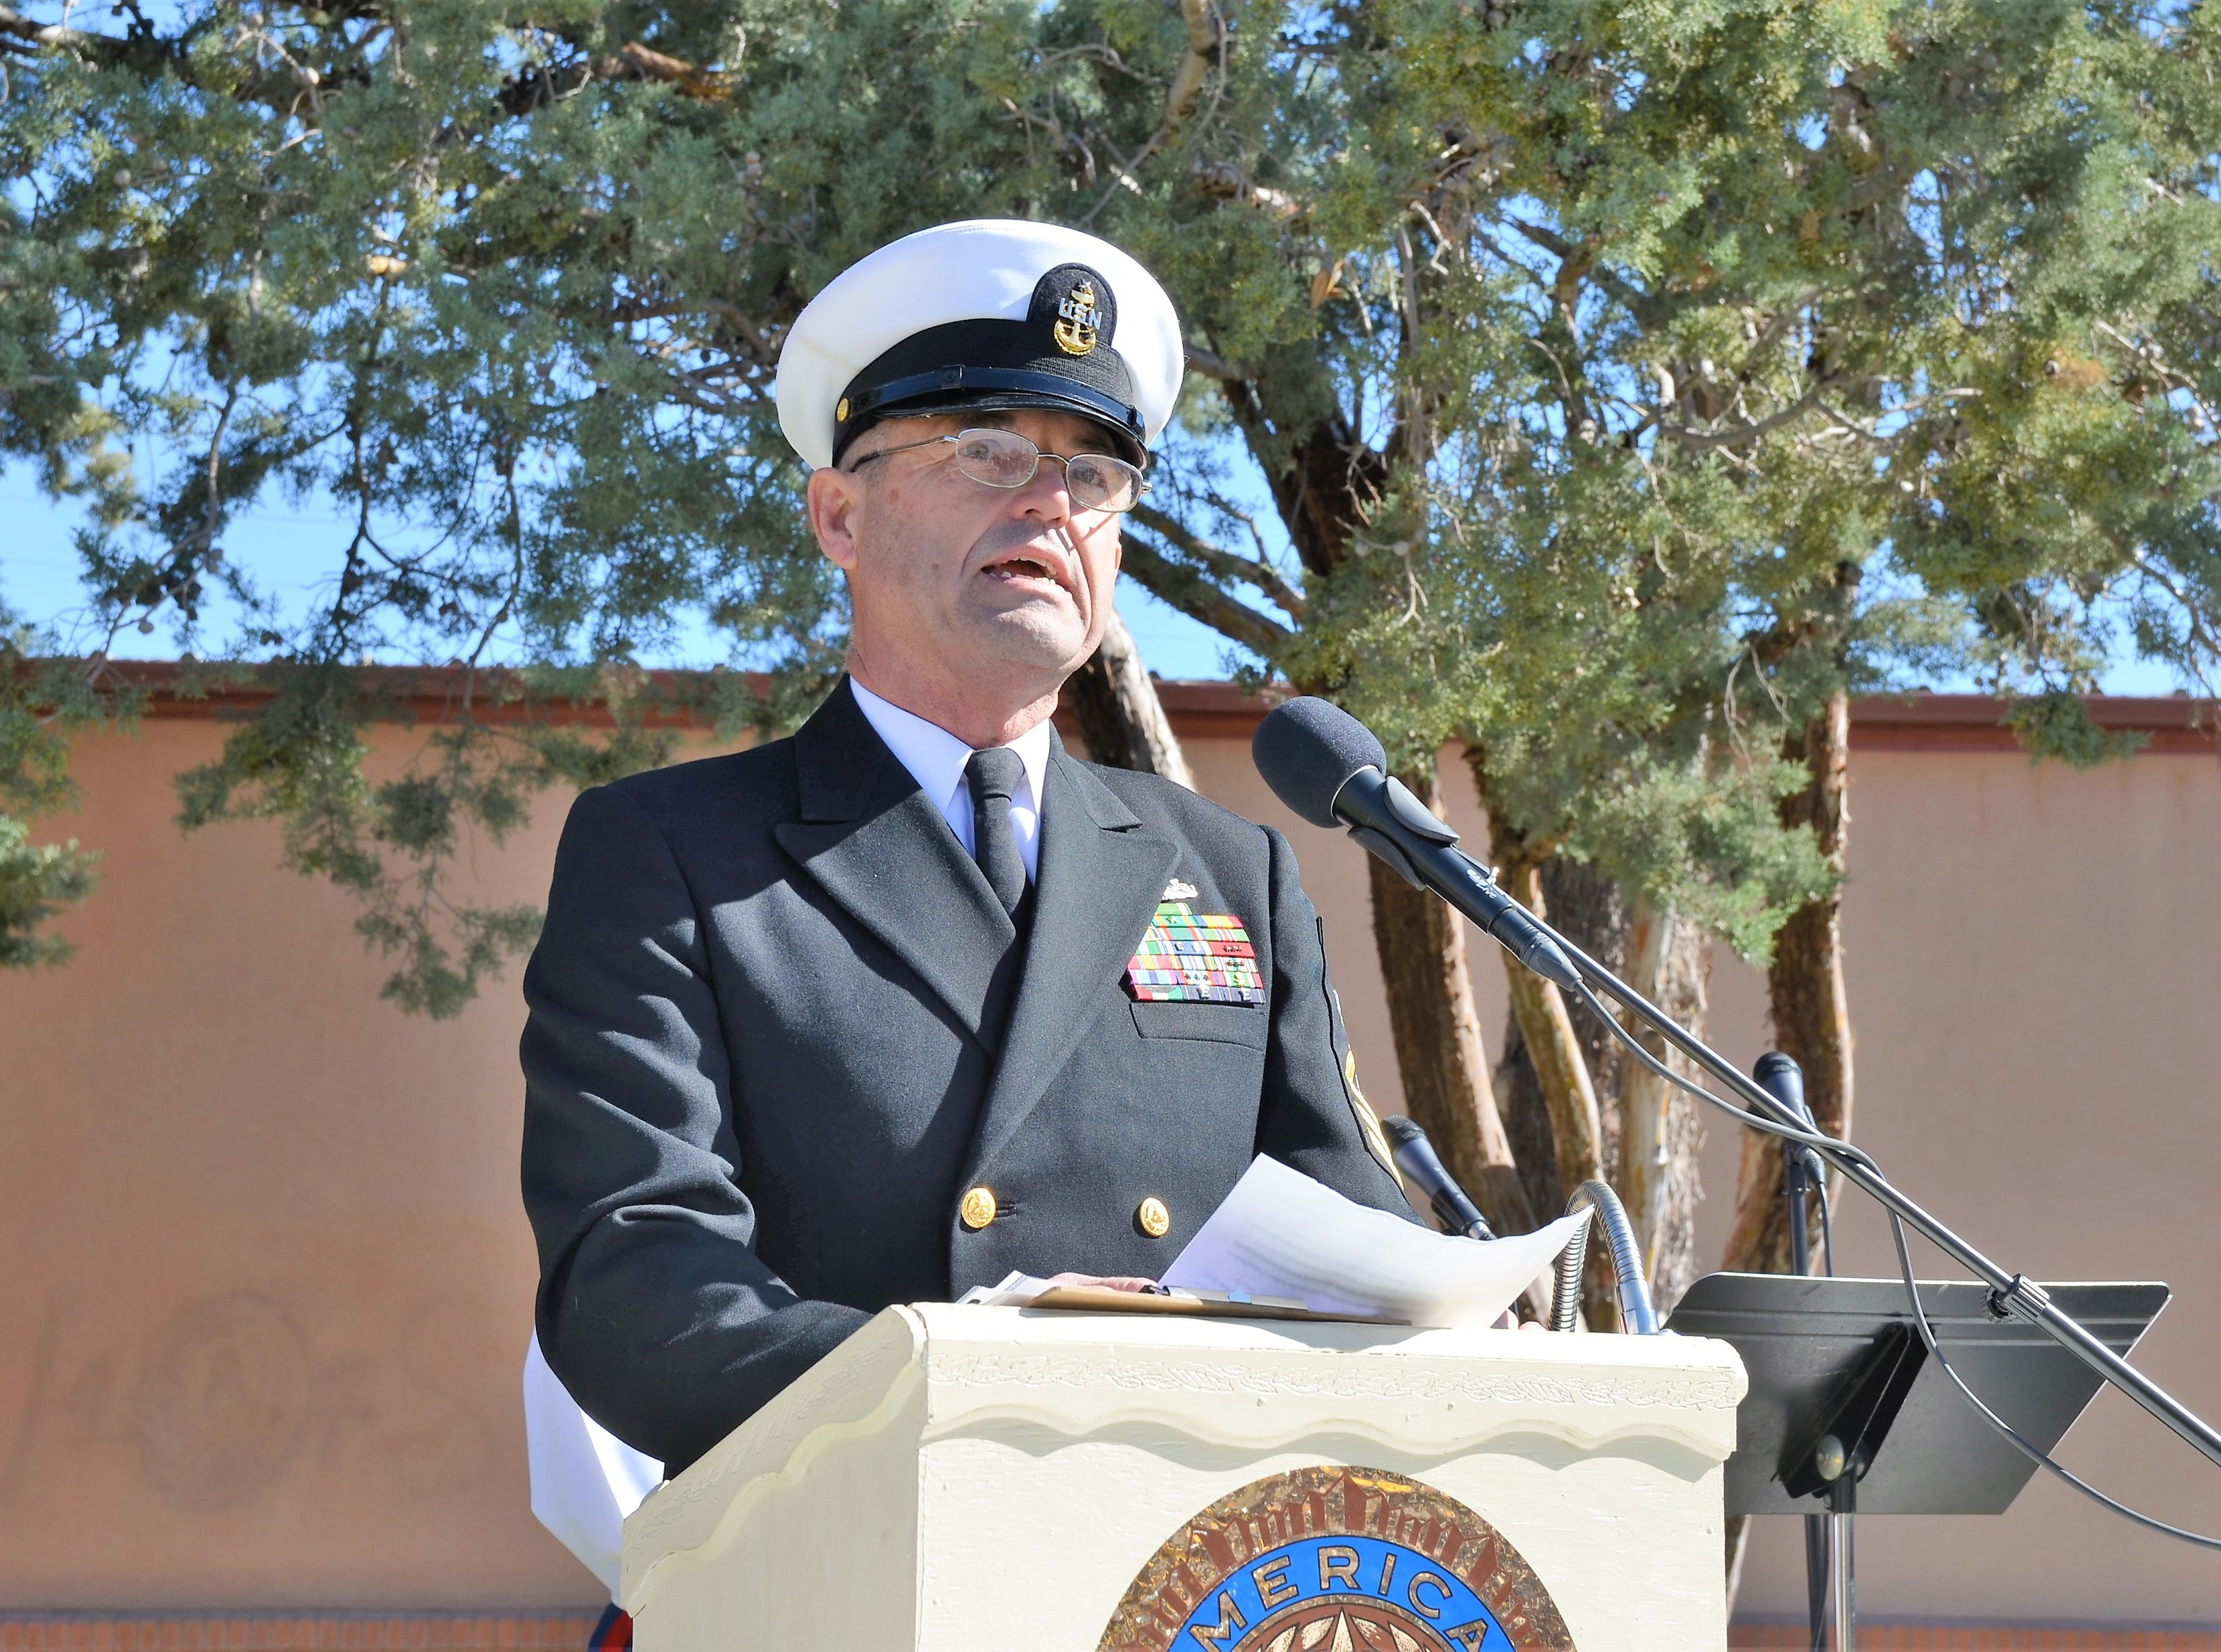 Guest speaker Chadwick Troyer a Navy veteran after serving 22 years addressed the crowd.